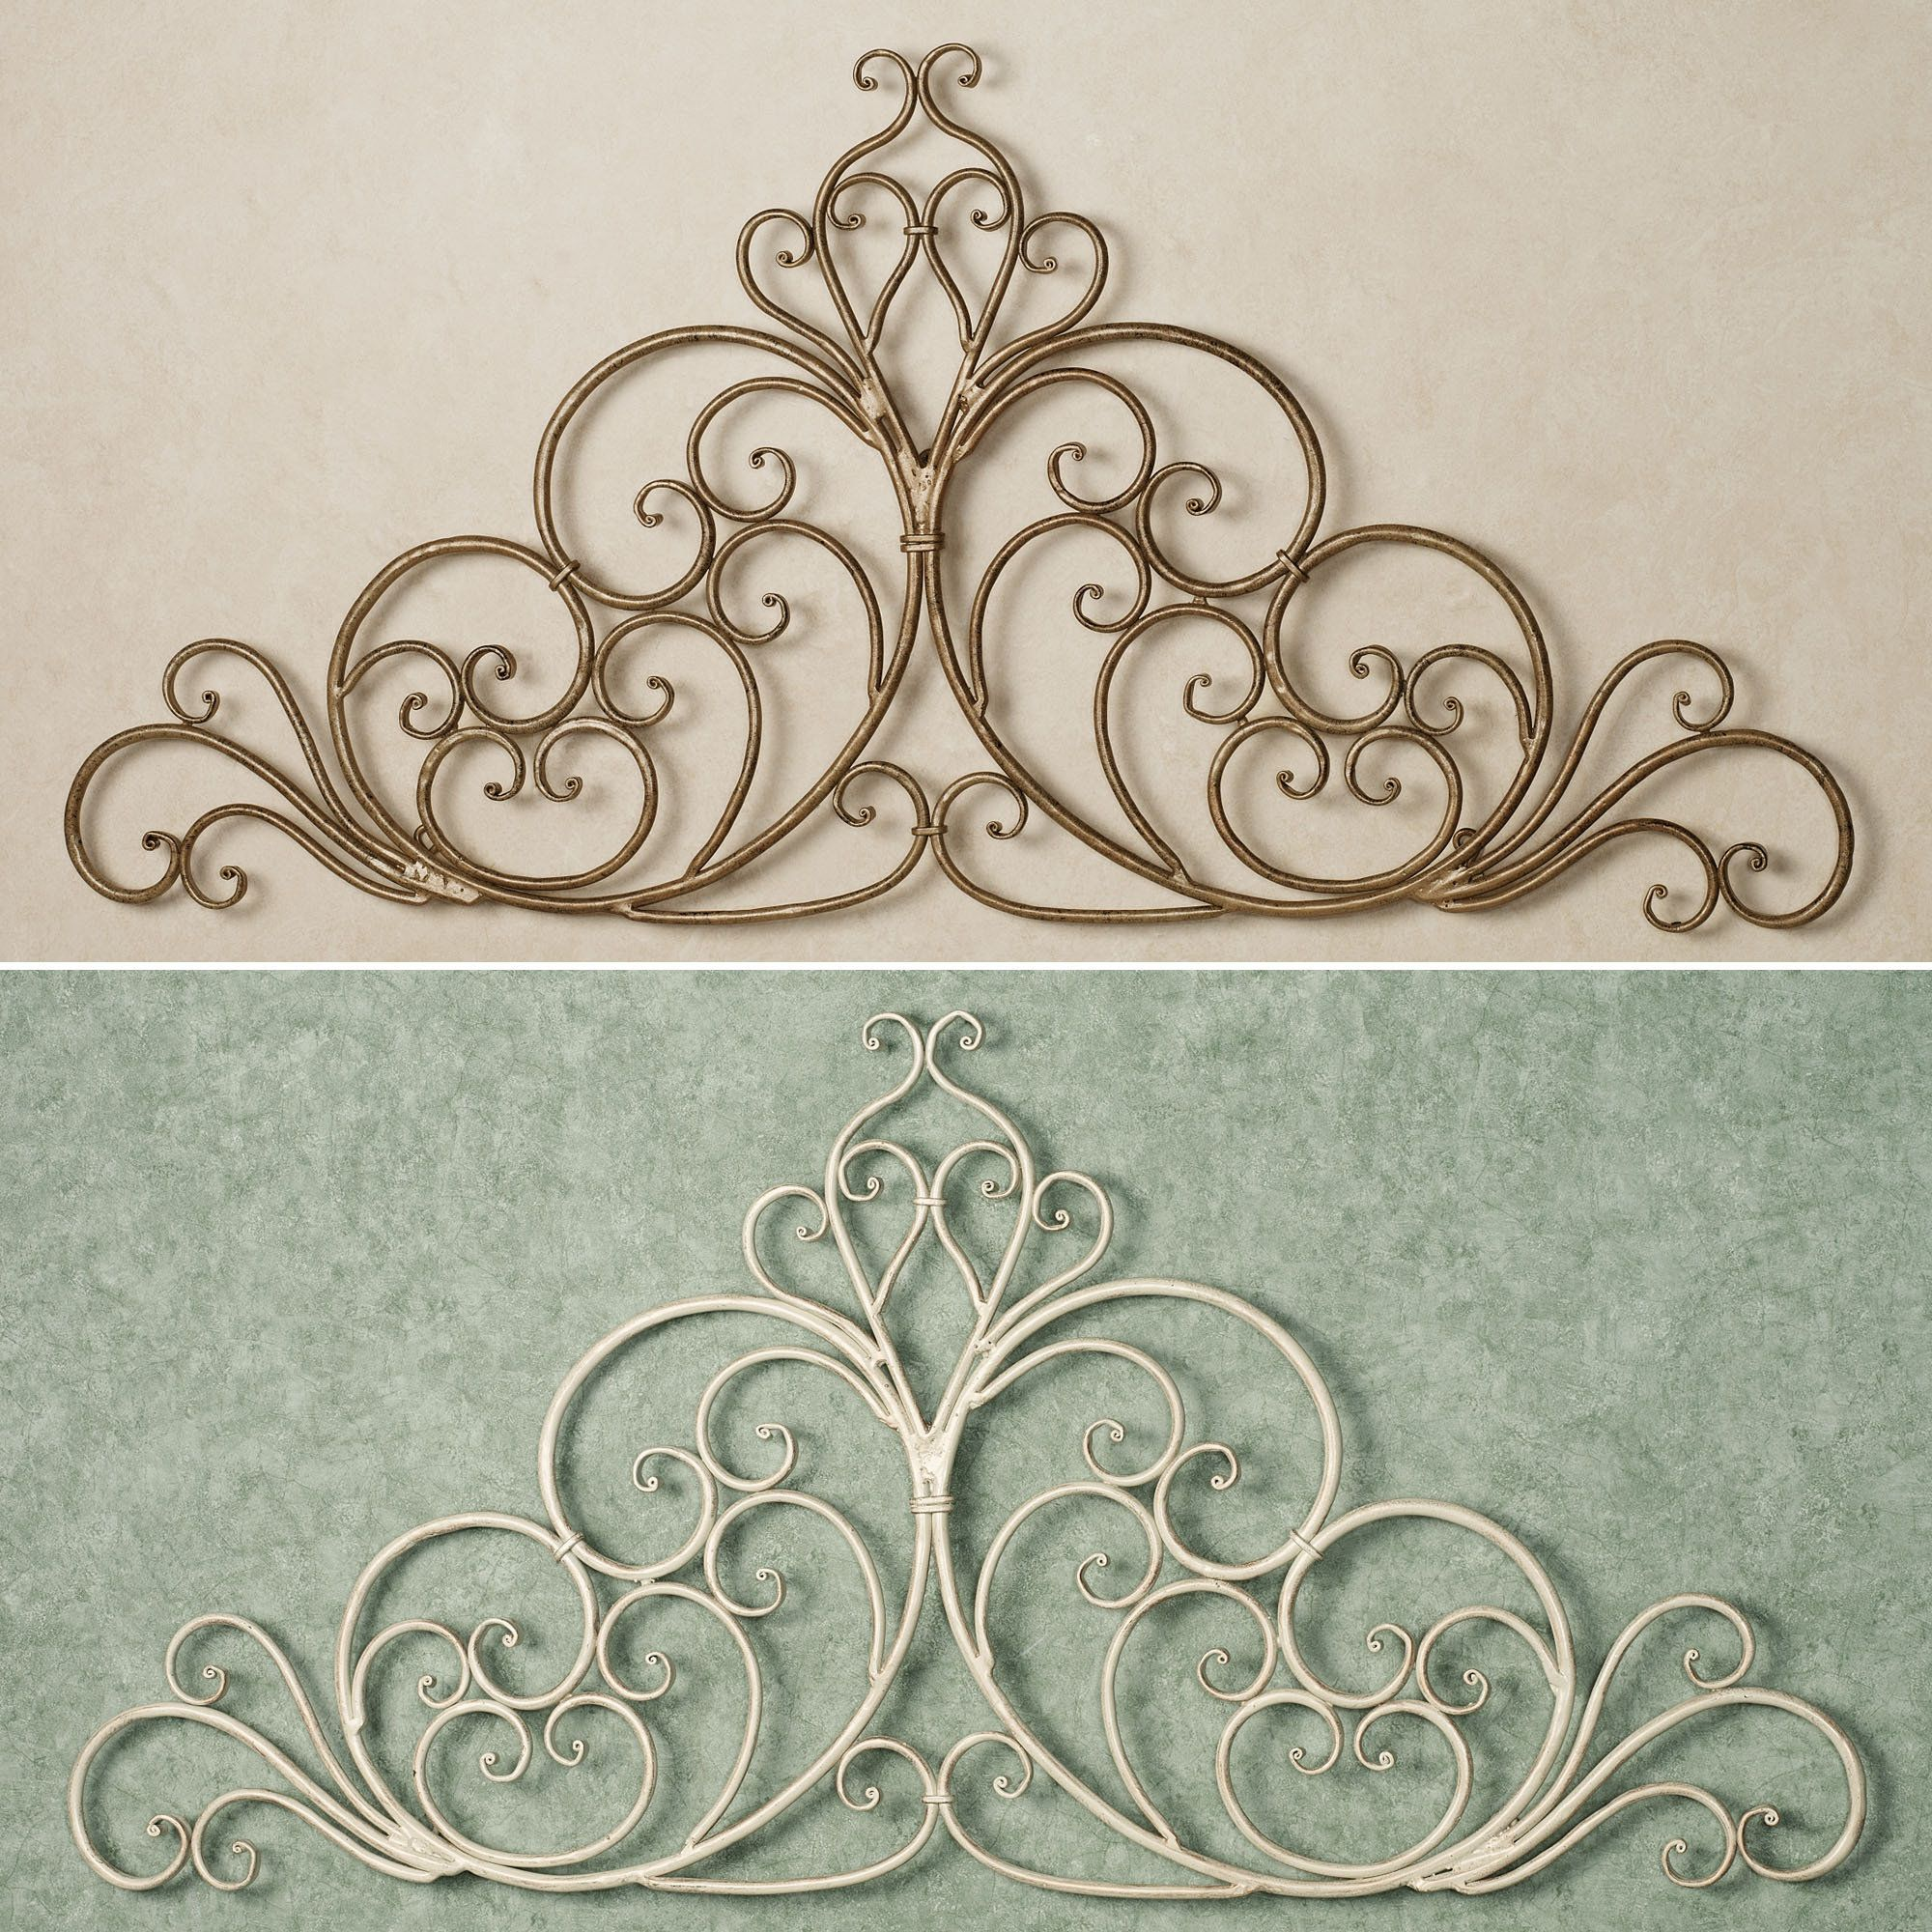 Wrought Iron Wall Scrolls Amazing Wrought Iron Wall Designs  Arround Homes  Luvin' Me Some